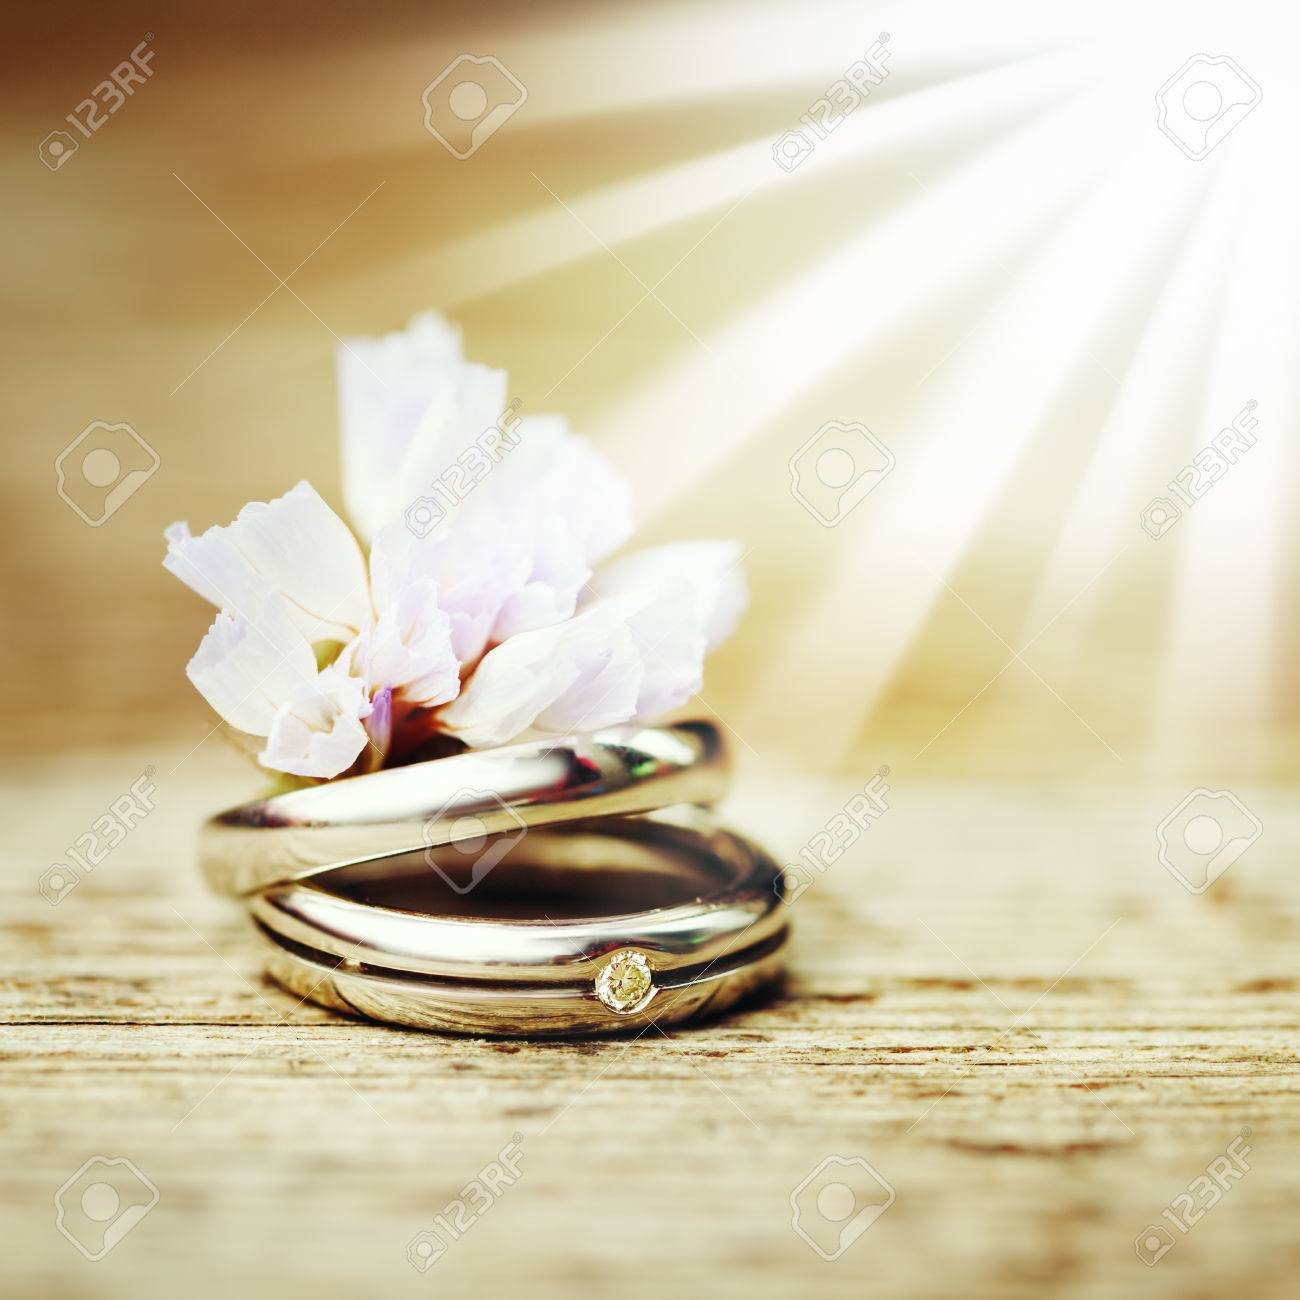 Wedding Engagement Rings Close Up With Cute Wild Flower On Wood